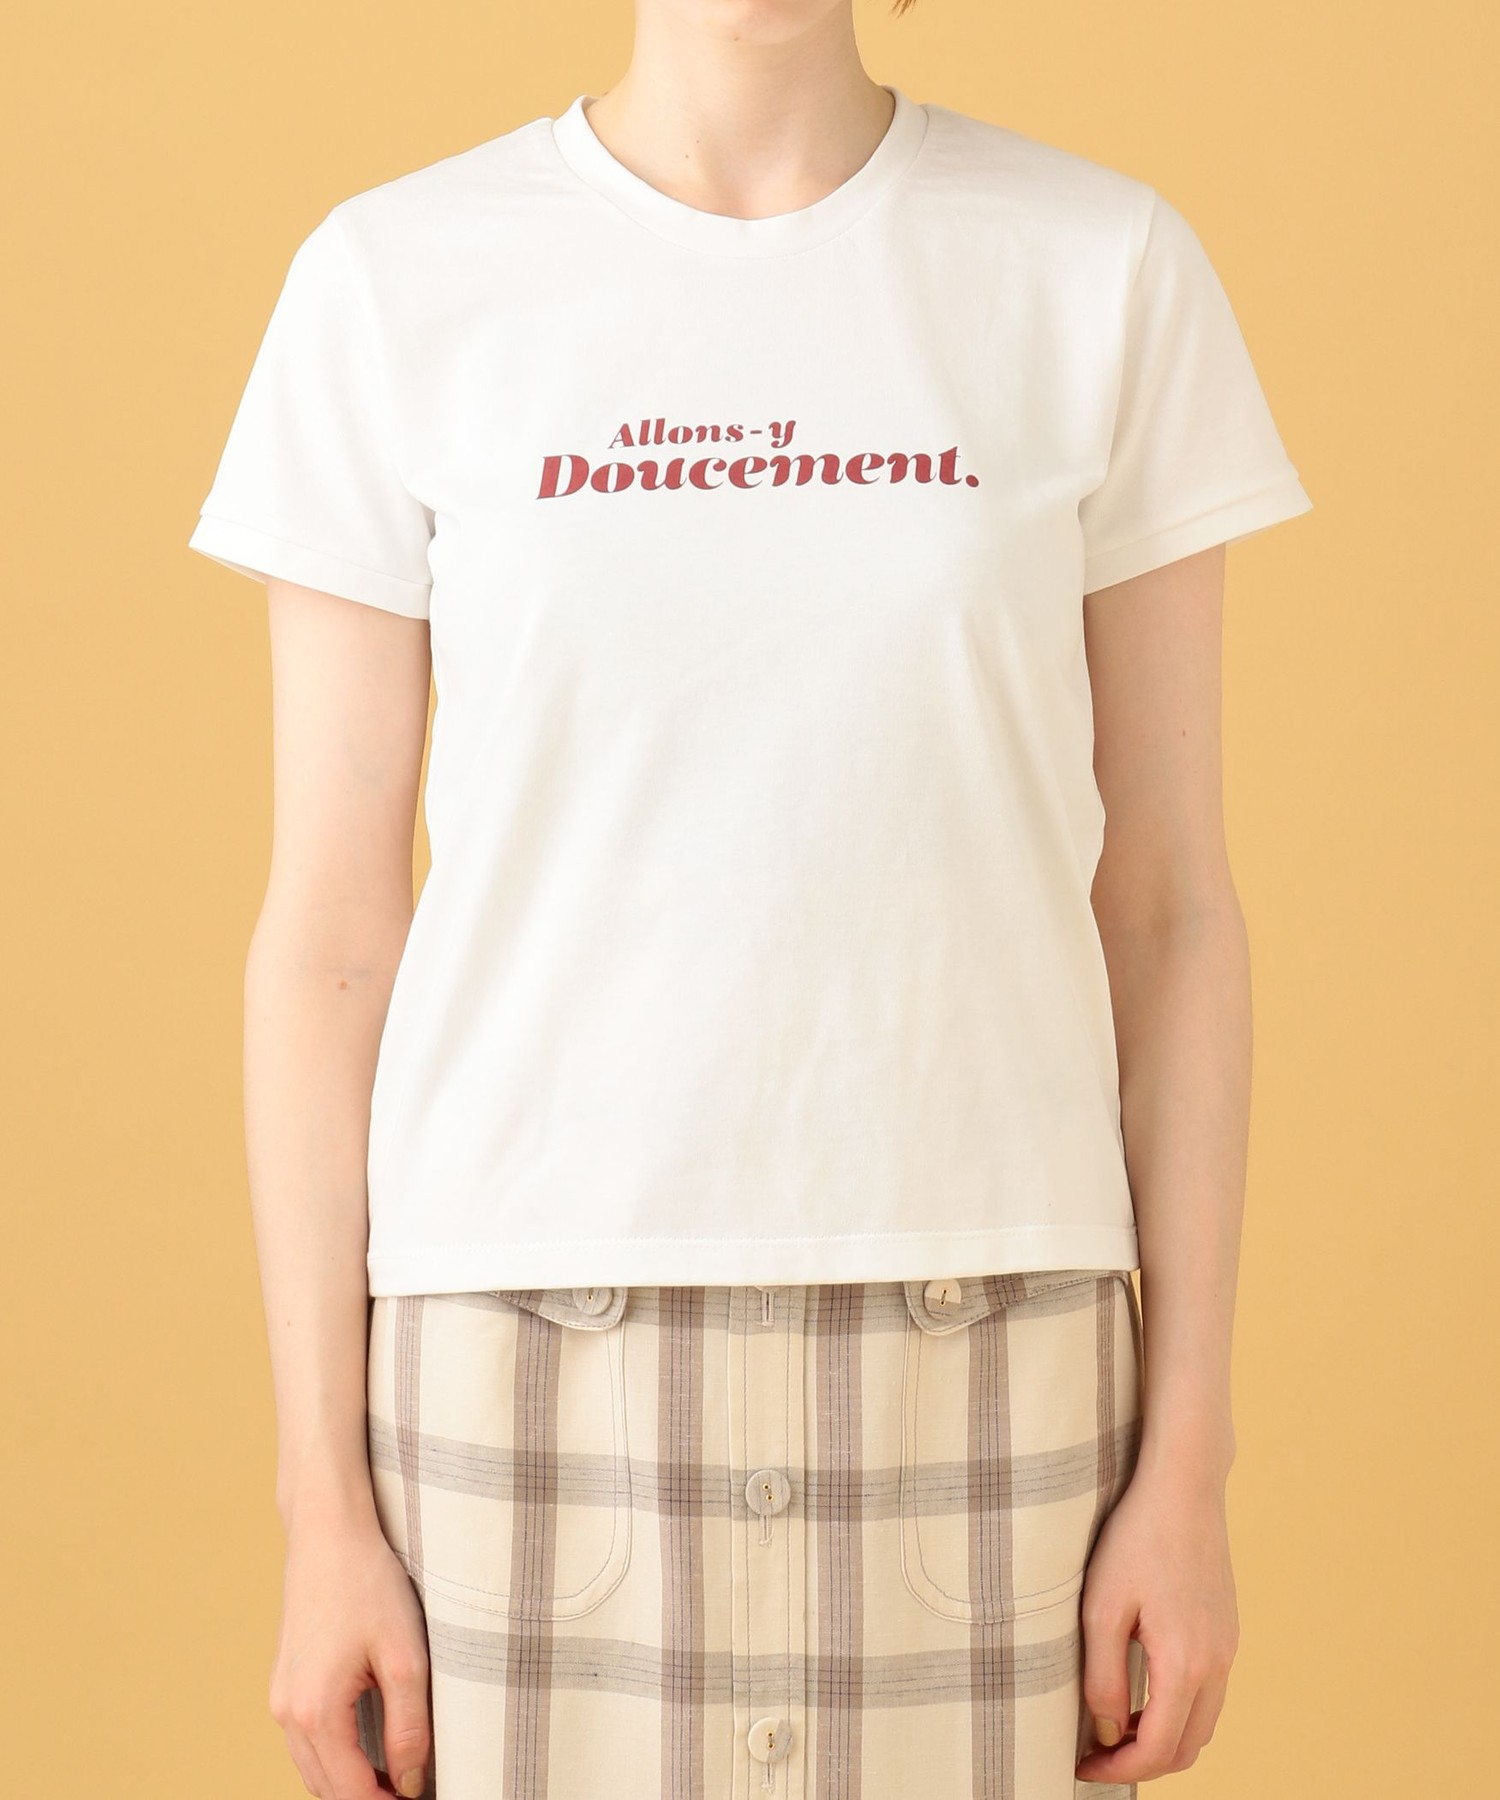 allons-y doucement. Tシャツ【ar 2020年4月号掲載】